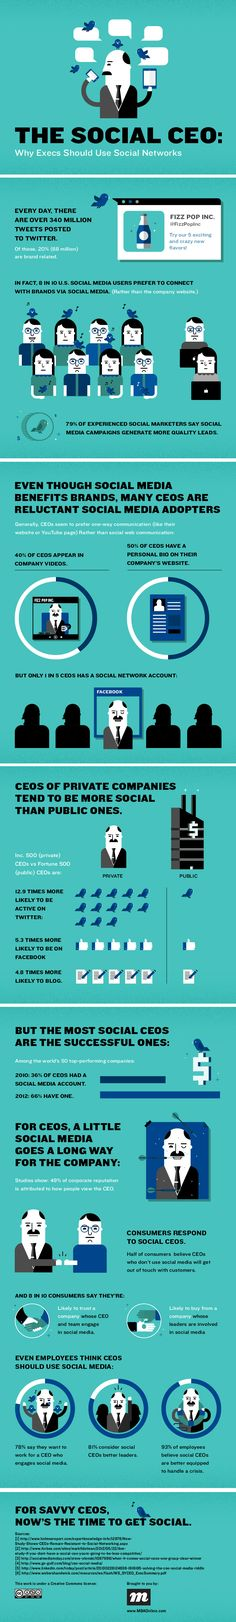 #Infographic: Inside the Mind of a Social CEO - Entrepreneur: Why Execs Should Use Social Networks.